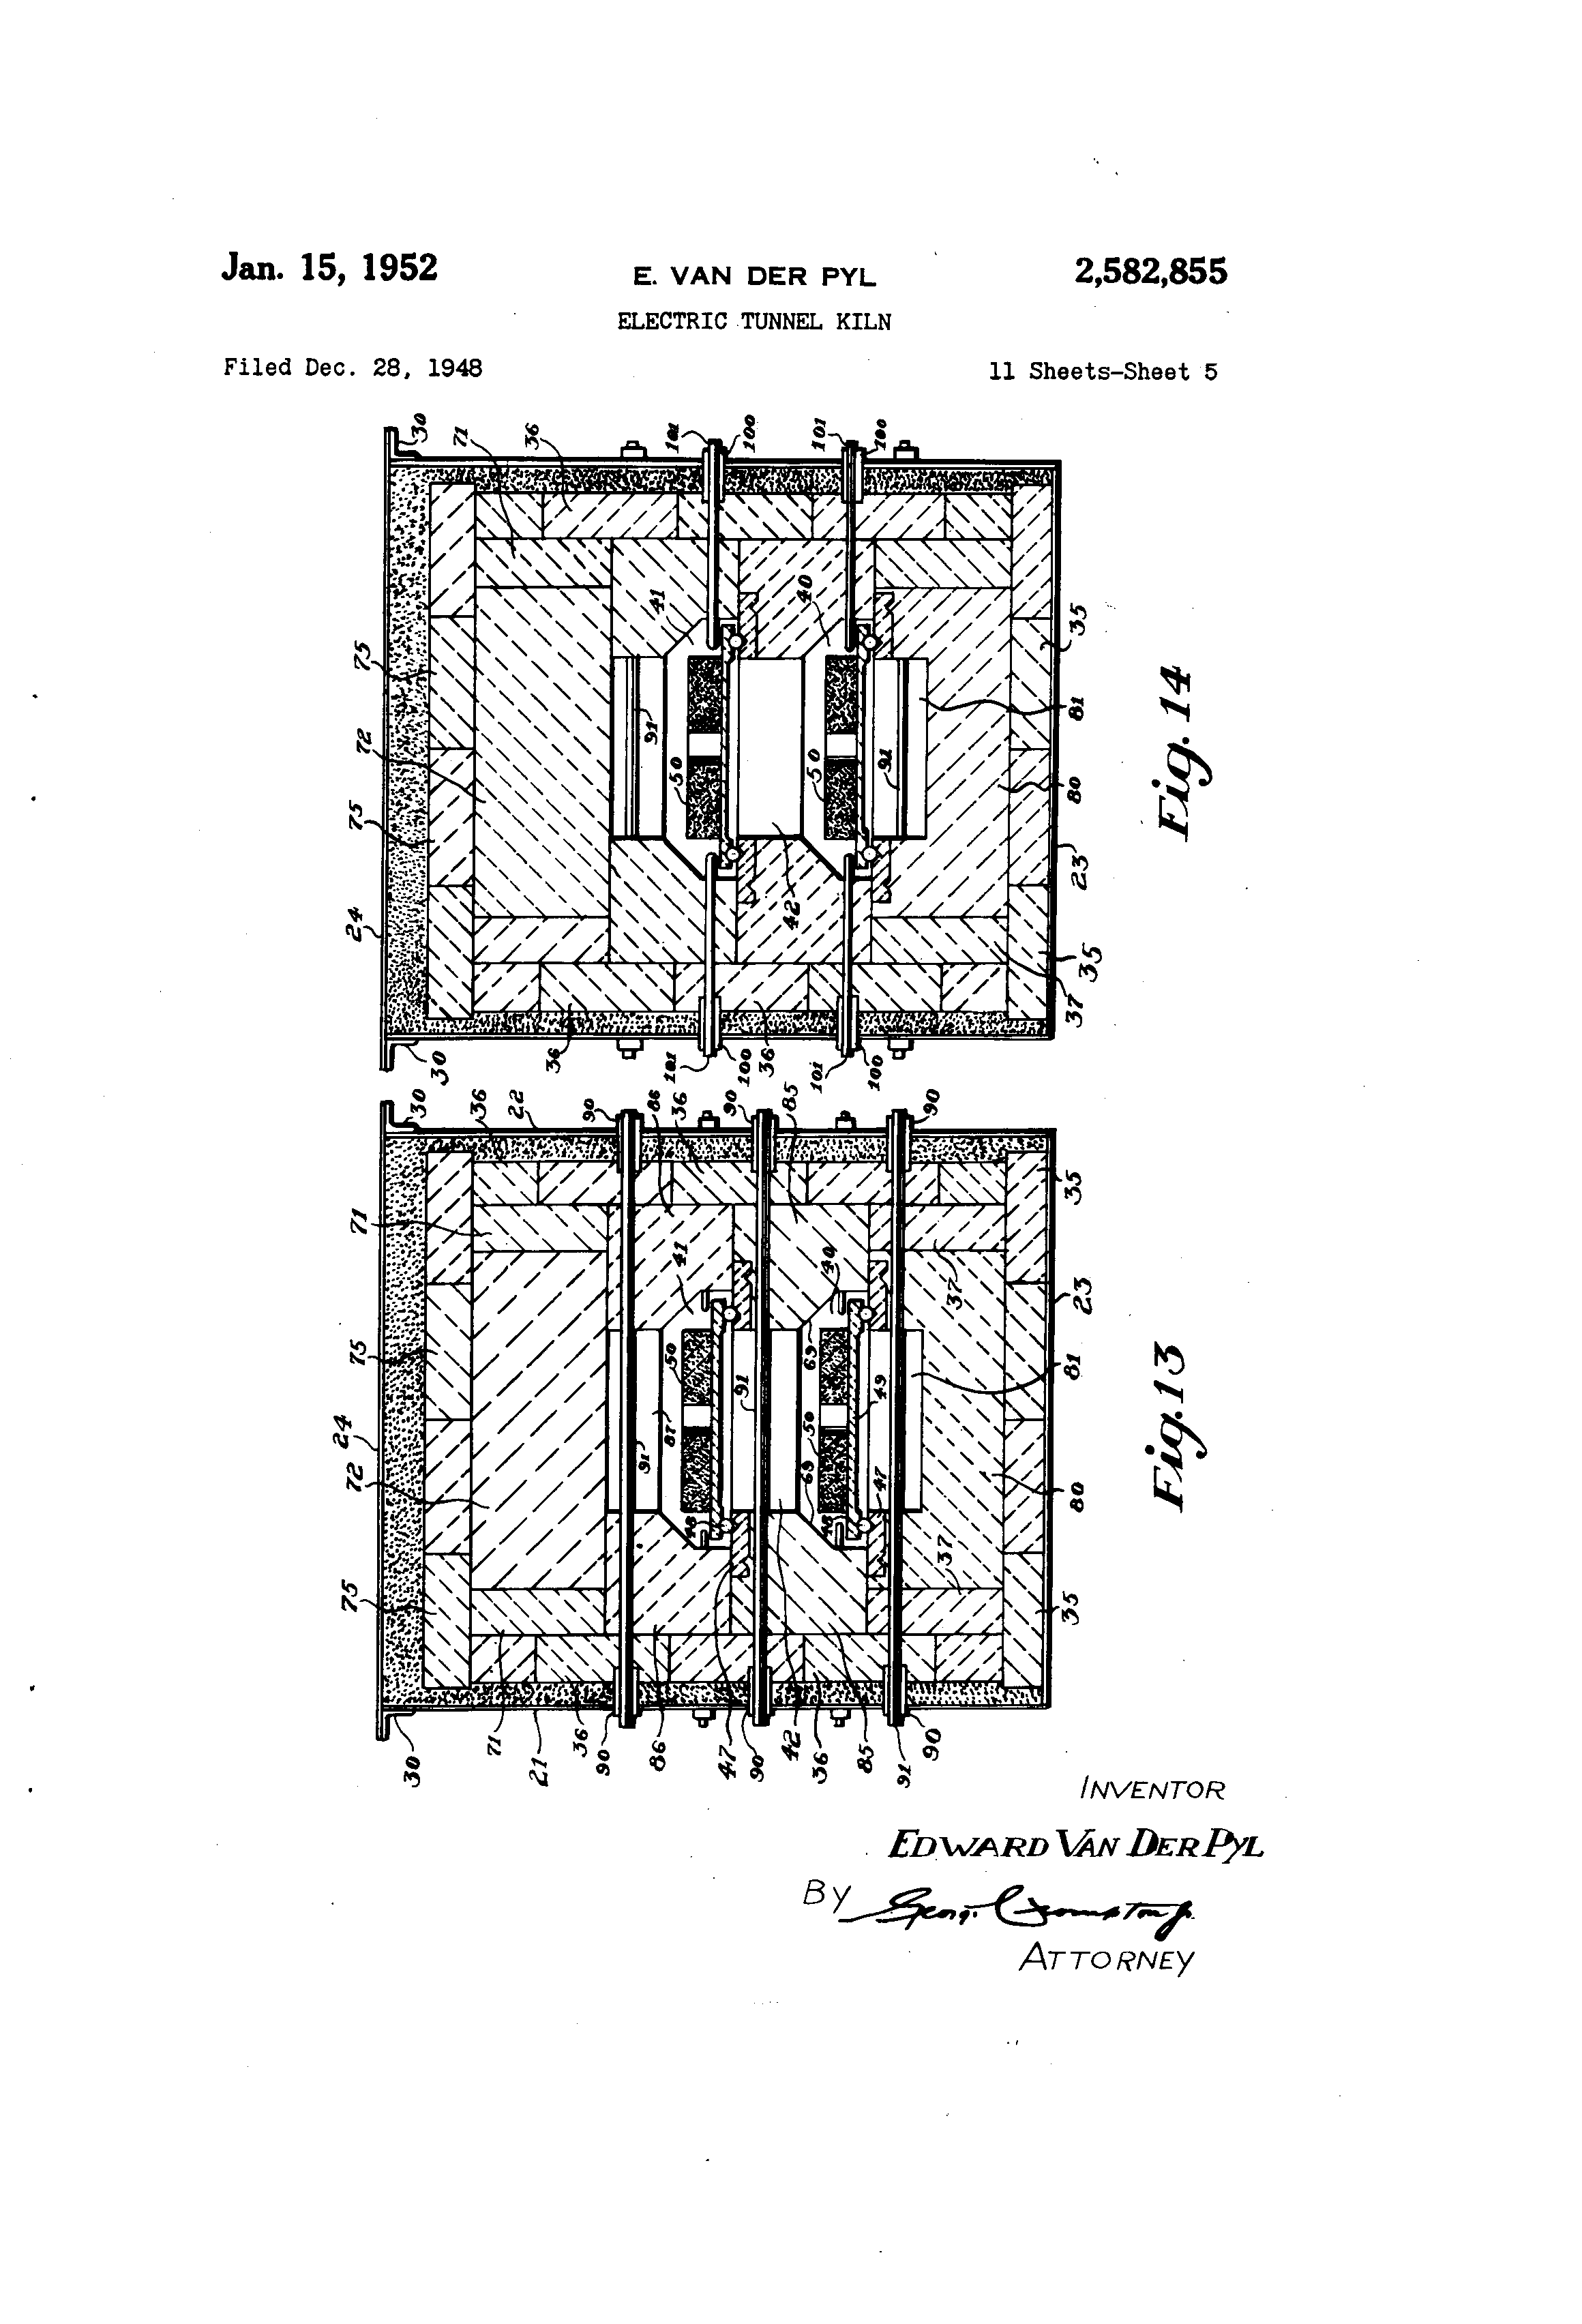 Wiring Diagram For Electric Kiln L Kilns Built To Skutt Patent Us Tunnel Patents Drawing